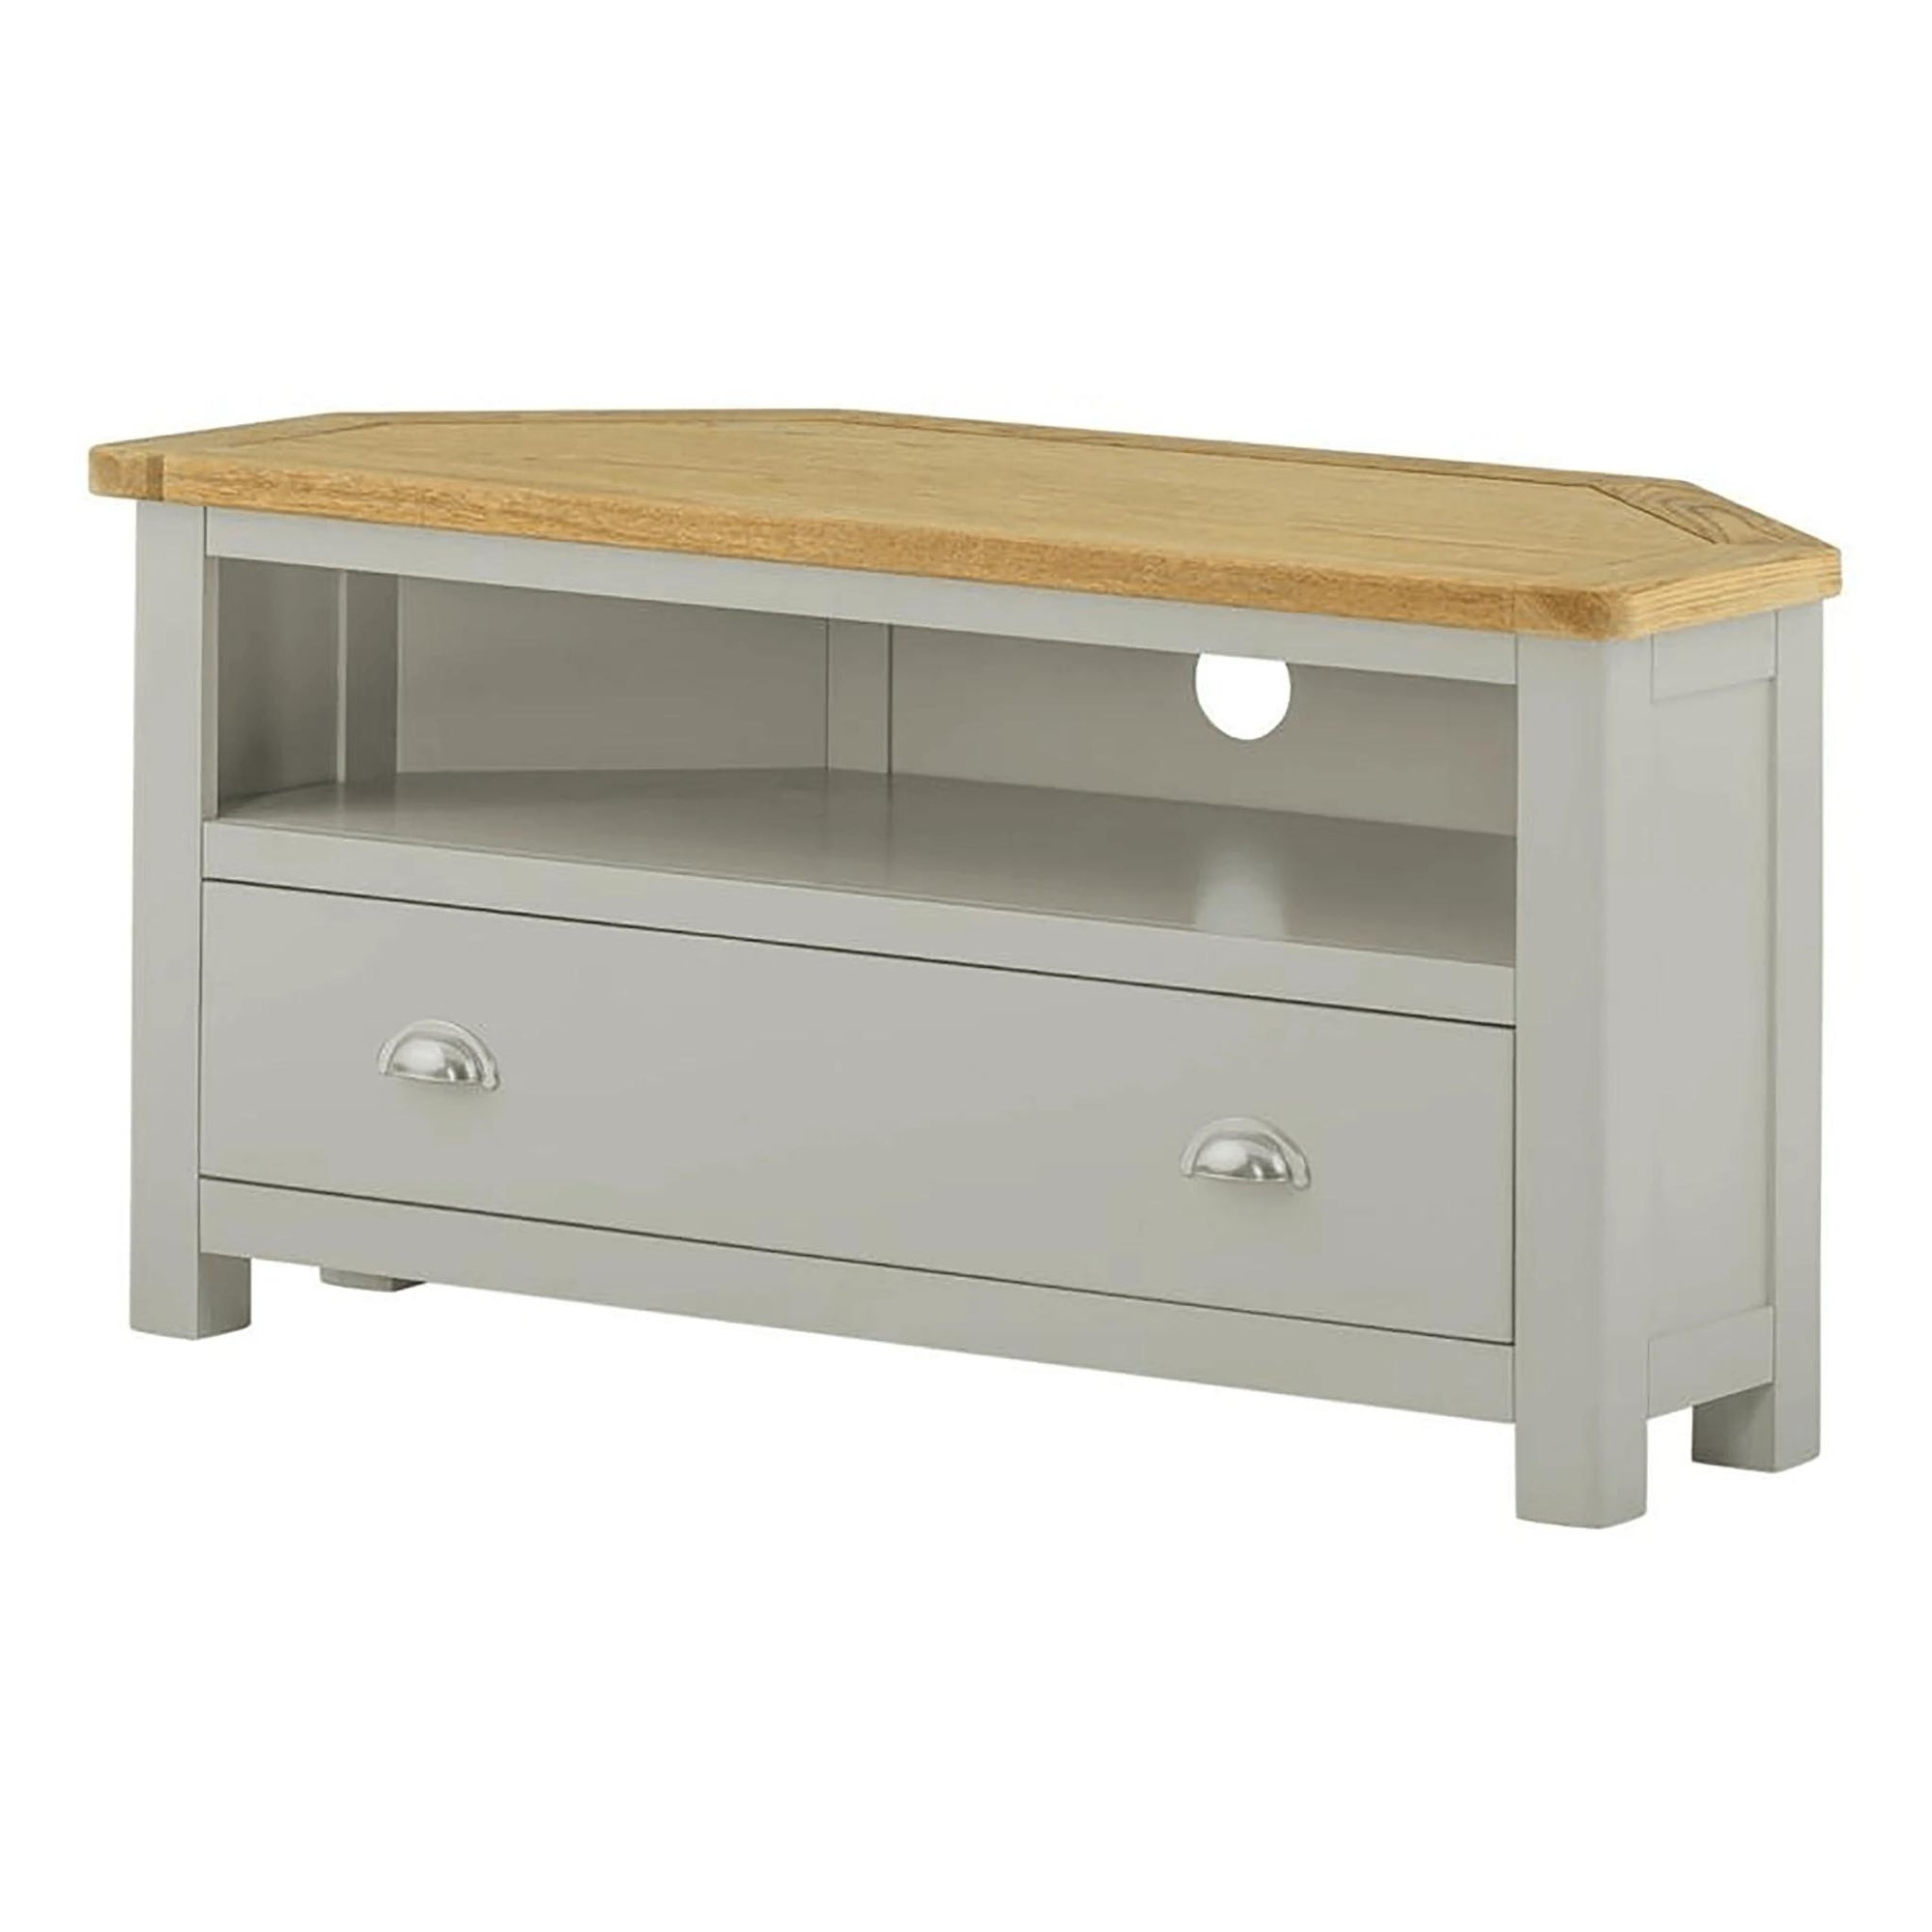 The Padstow Grey Corner TV Stand & Storage Unit from Roseland Furniture